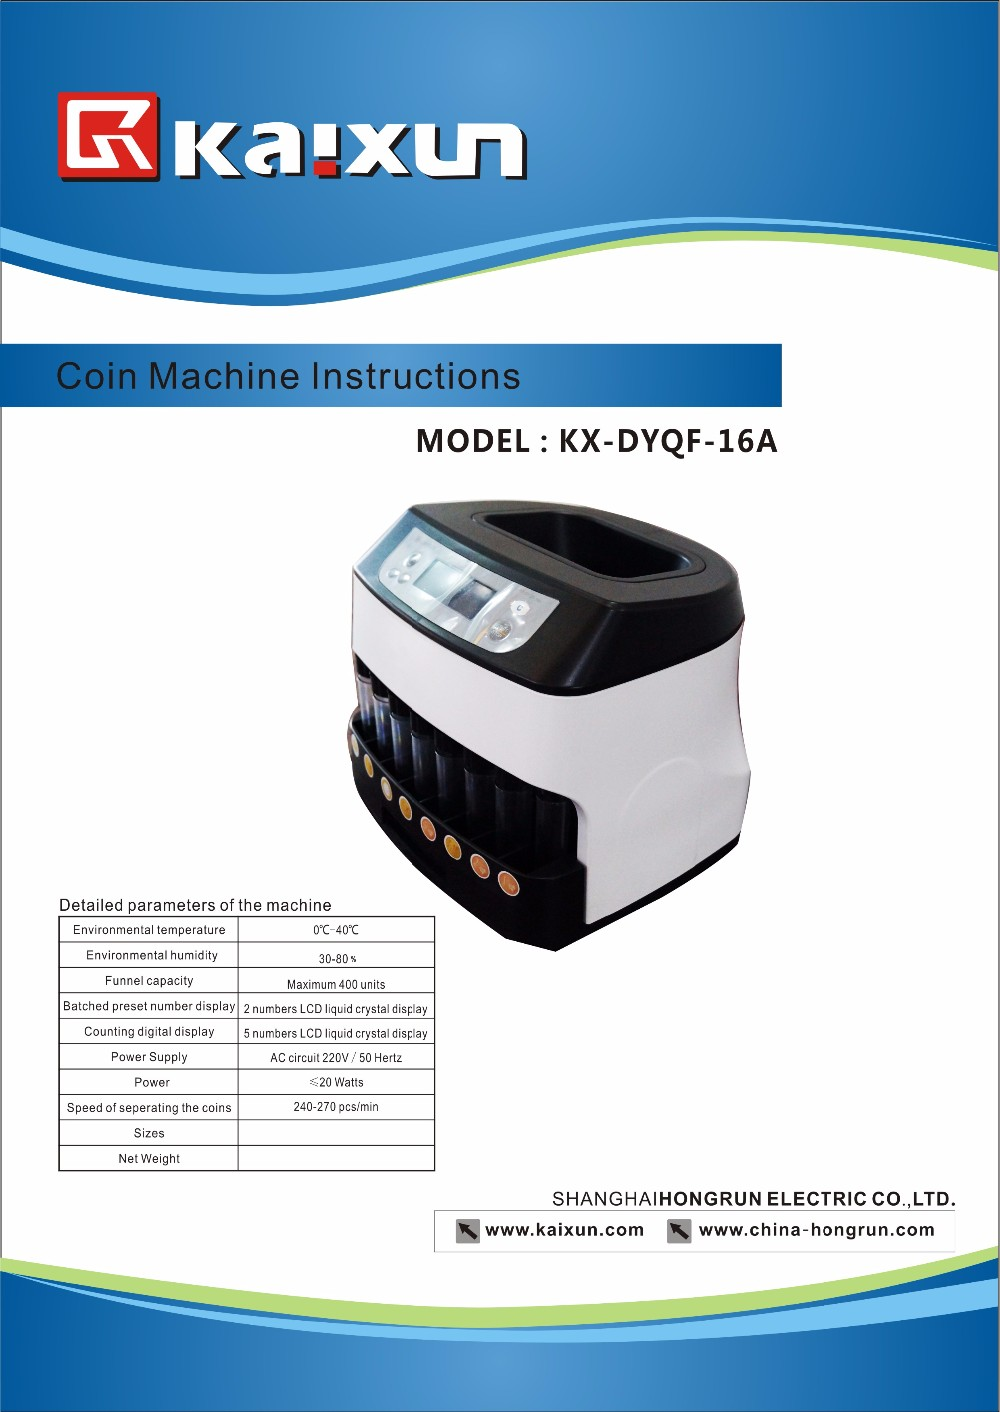 New coin sorter value money counter uv counterfeit detector